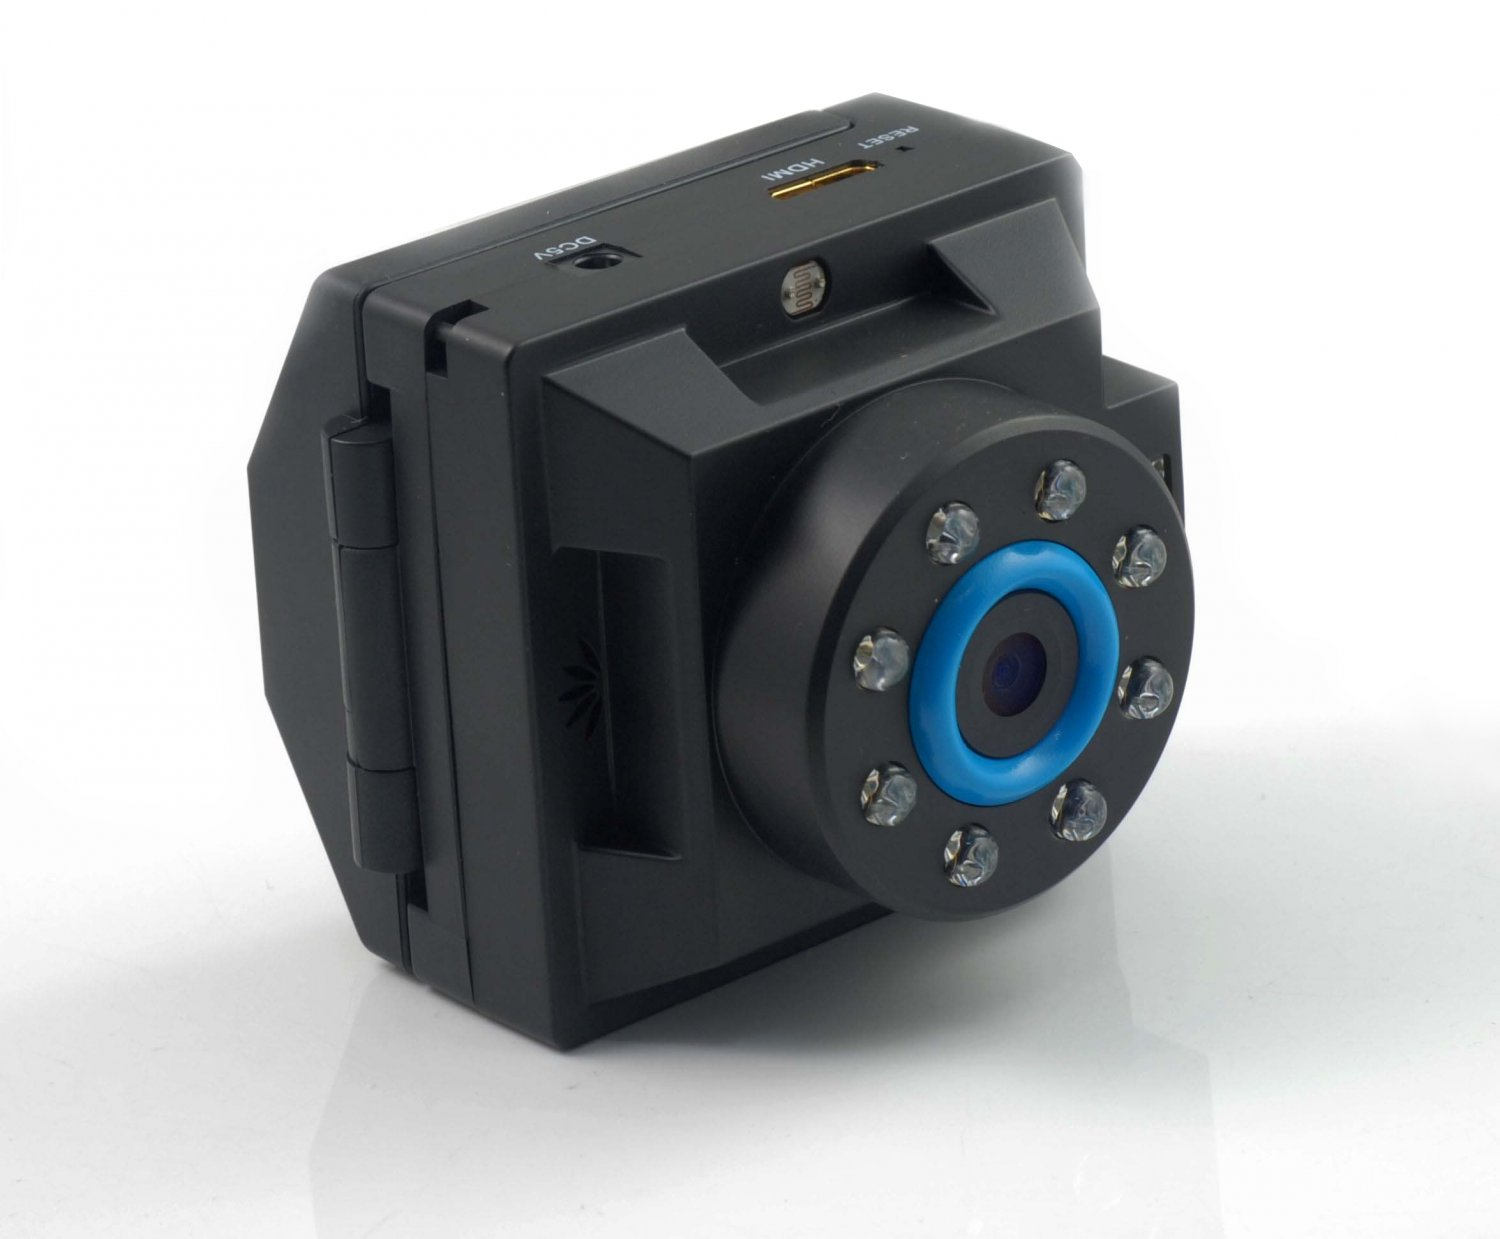 Motion Detection HD Car DVR Video Recorder and Player with 2.4 inches LCD Screen and Night Vision